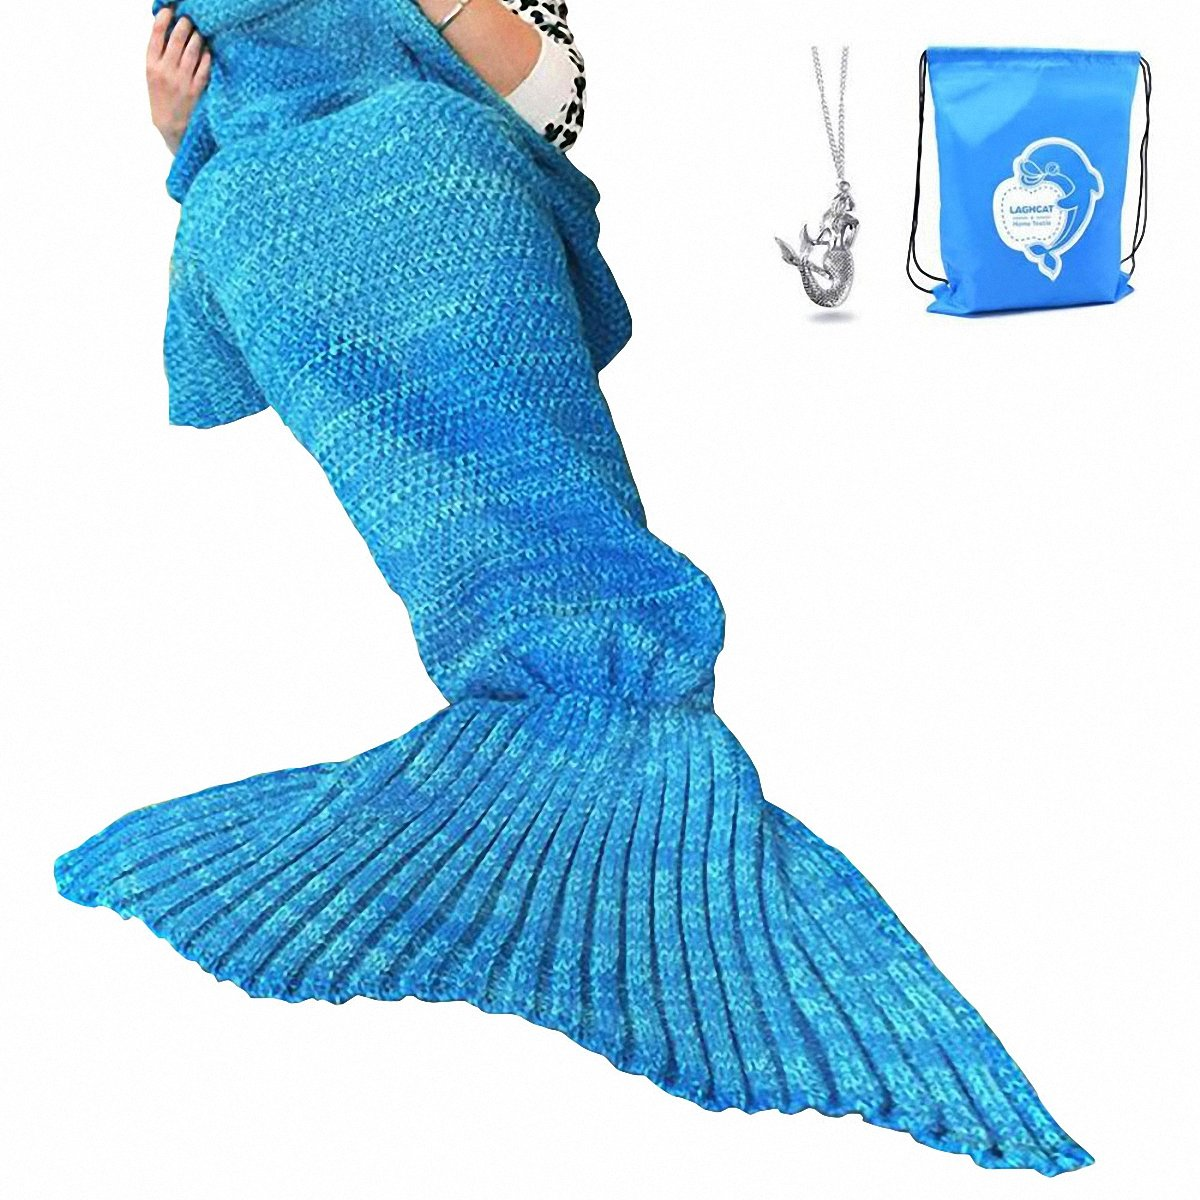 LAGHCAT Mermaid Tail Blanket Crochet Mermaid Blanket for Adult, Soft All Seasons Sleeping Blankets, Classic Pattern (71''x35.5'', Blue) by LAGHCAT